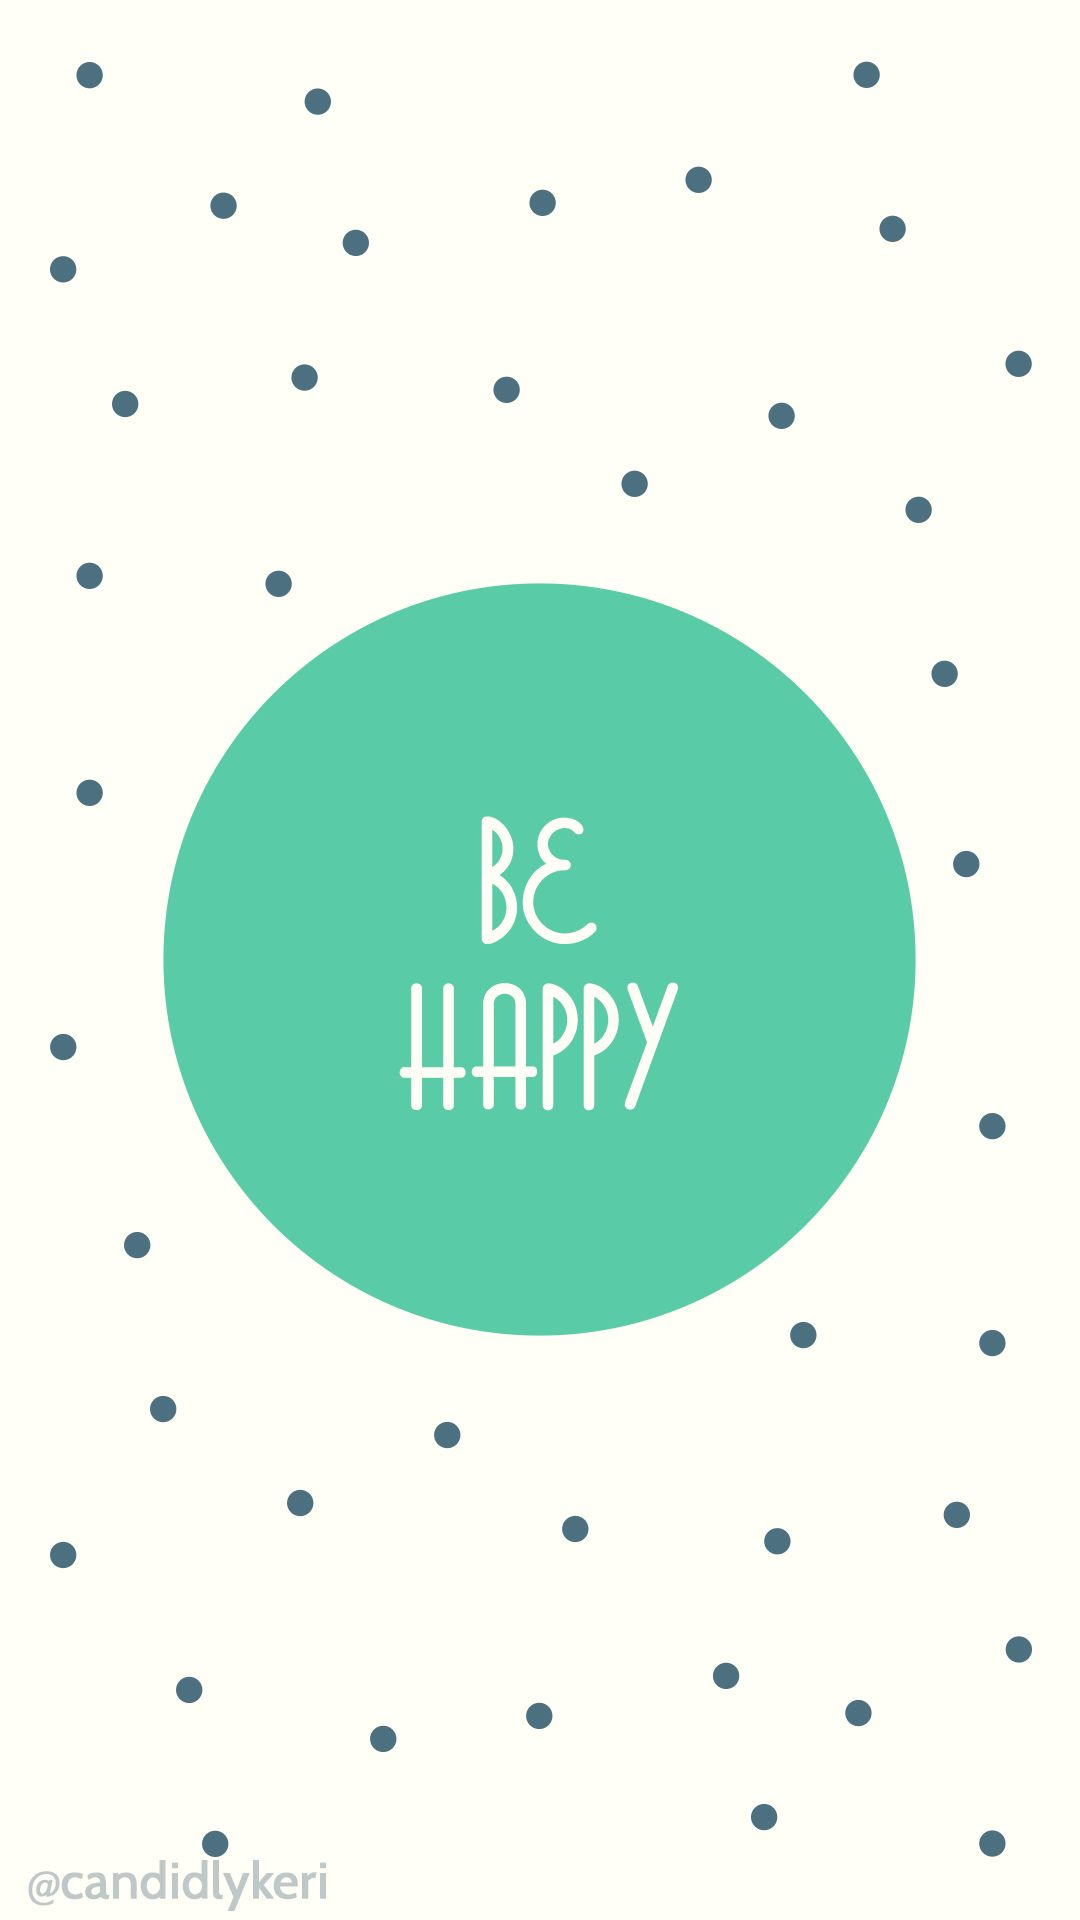 Be Happy Polka Dot Green And Blue Quote For Wallpaper On Desktop Iphone Android Or Mobile Free The Blog